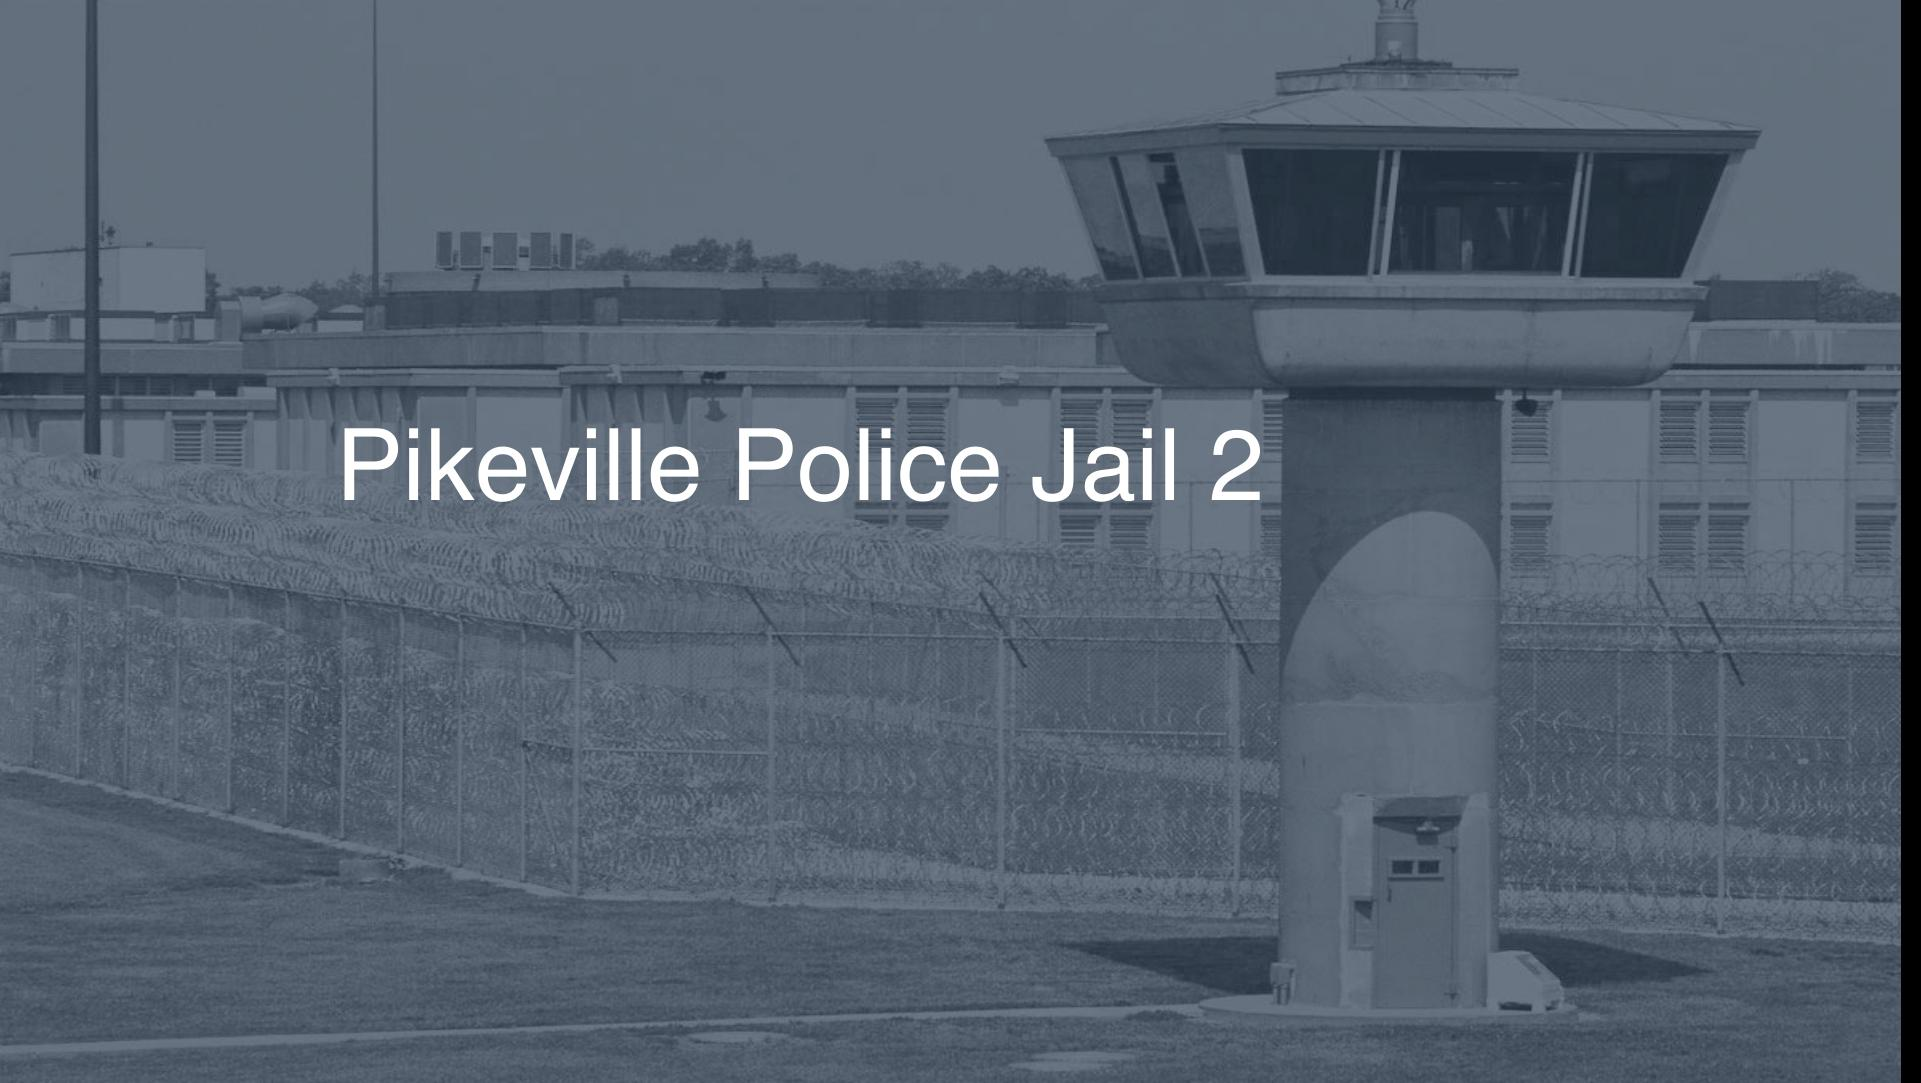 Pikeville Police Jail correctional facility picture